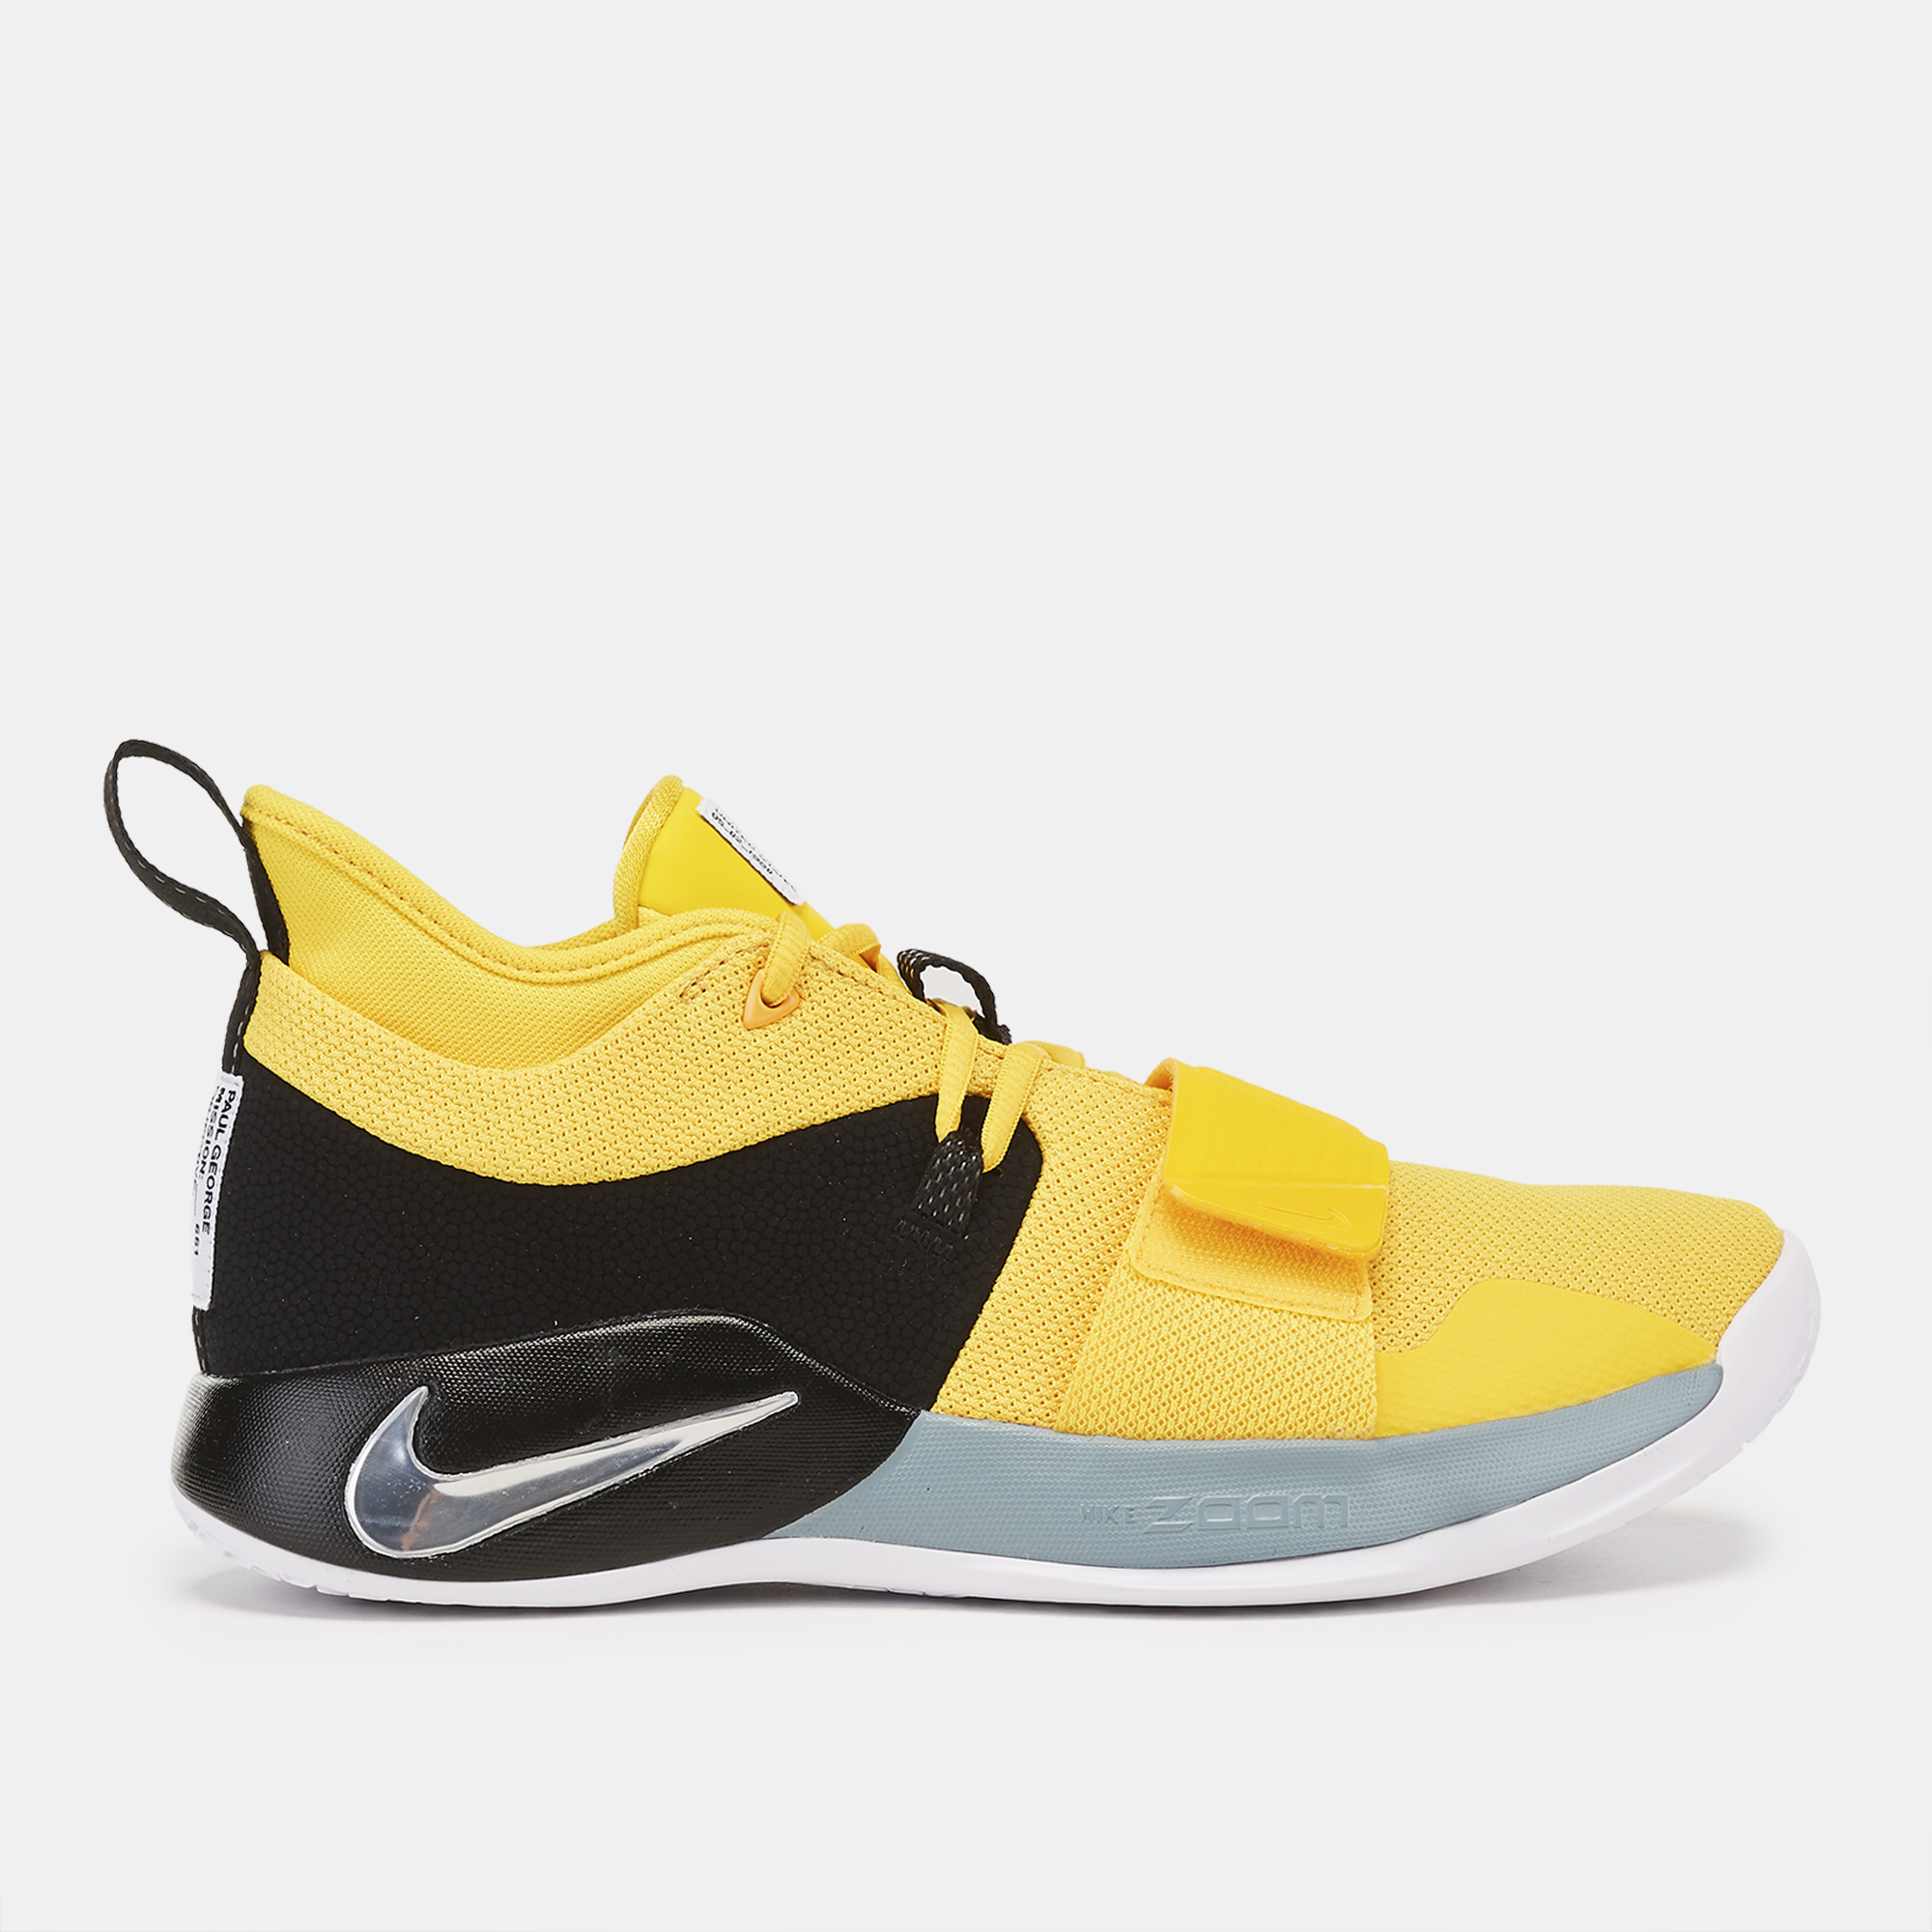 buy online 2ae55 8c965 Shop Yellow Nike PG 2.5 Basketball Shoe | Sneakers | Shoes ...